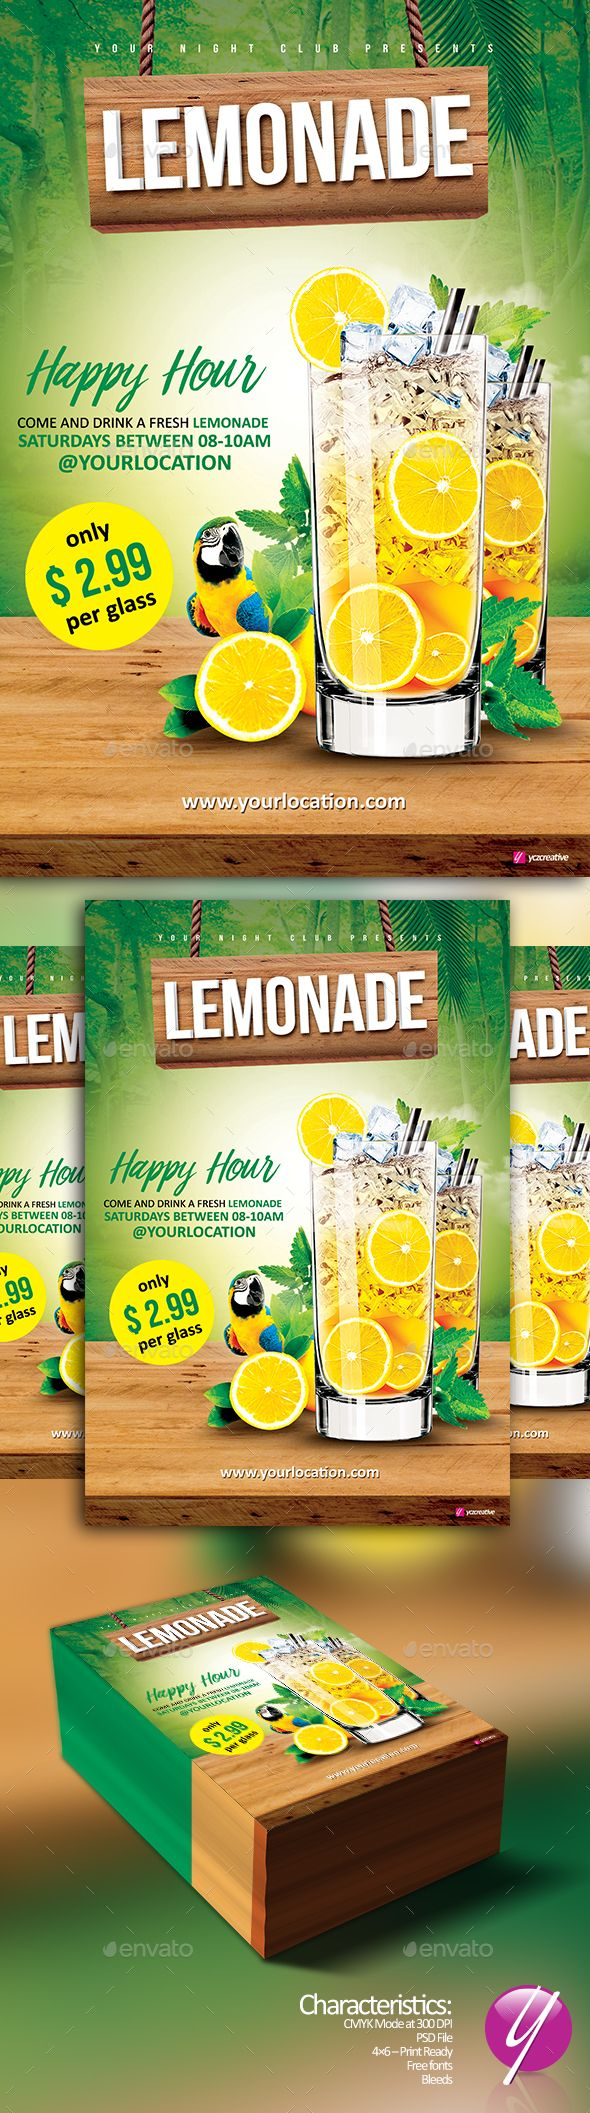 Lemonade Happy Hour Flyer Template PSD. Download here: http://graphicriver.net/item/lemonade-happy-hour/16478869?ref=ksioks